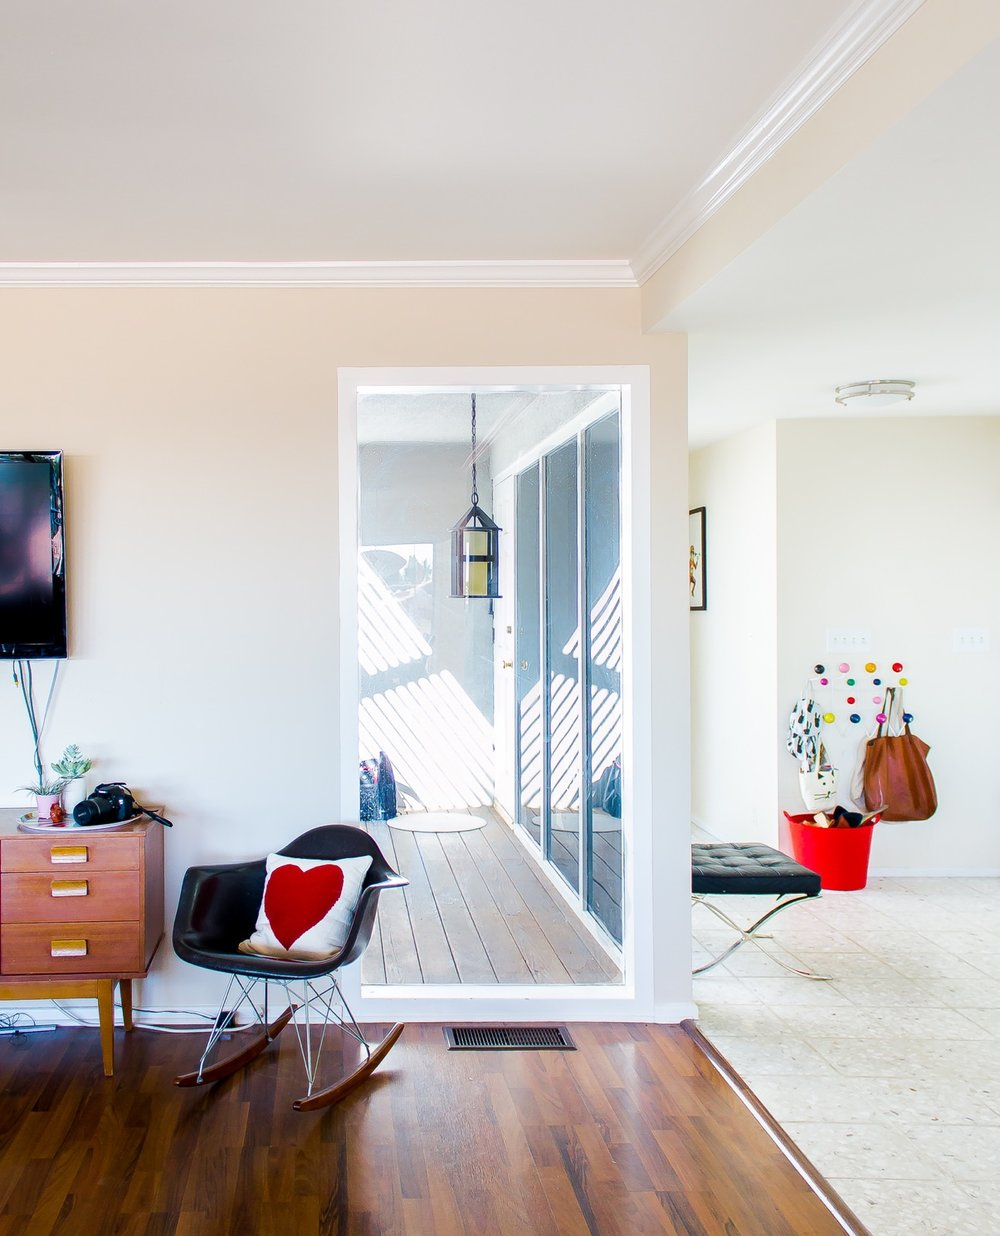 Danny Remender's Minimal California home for Apartment Therapy